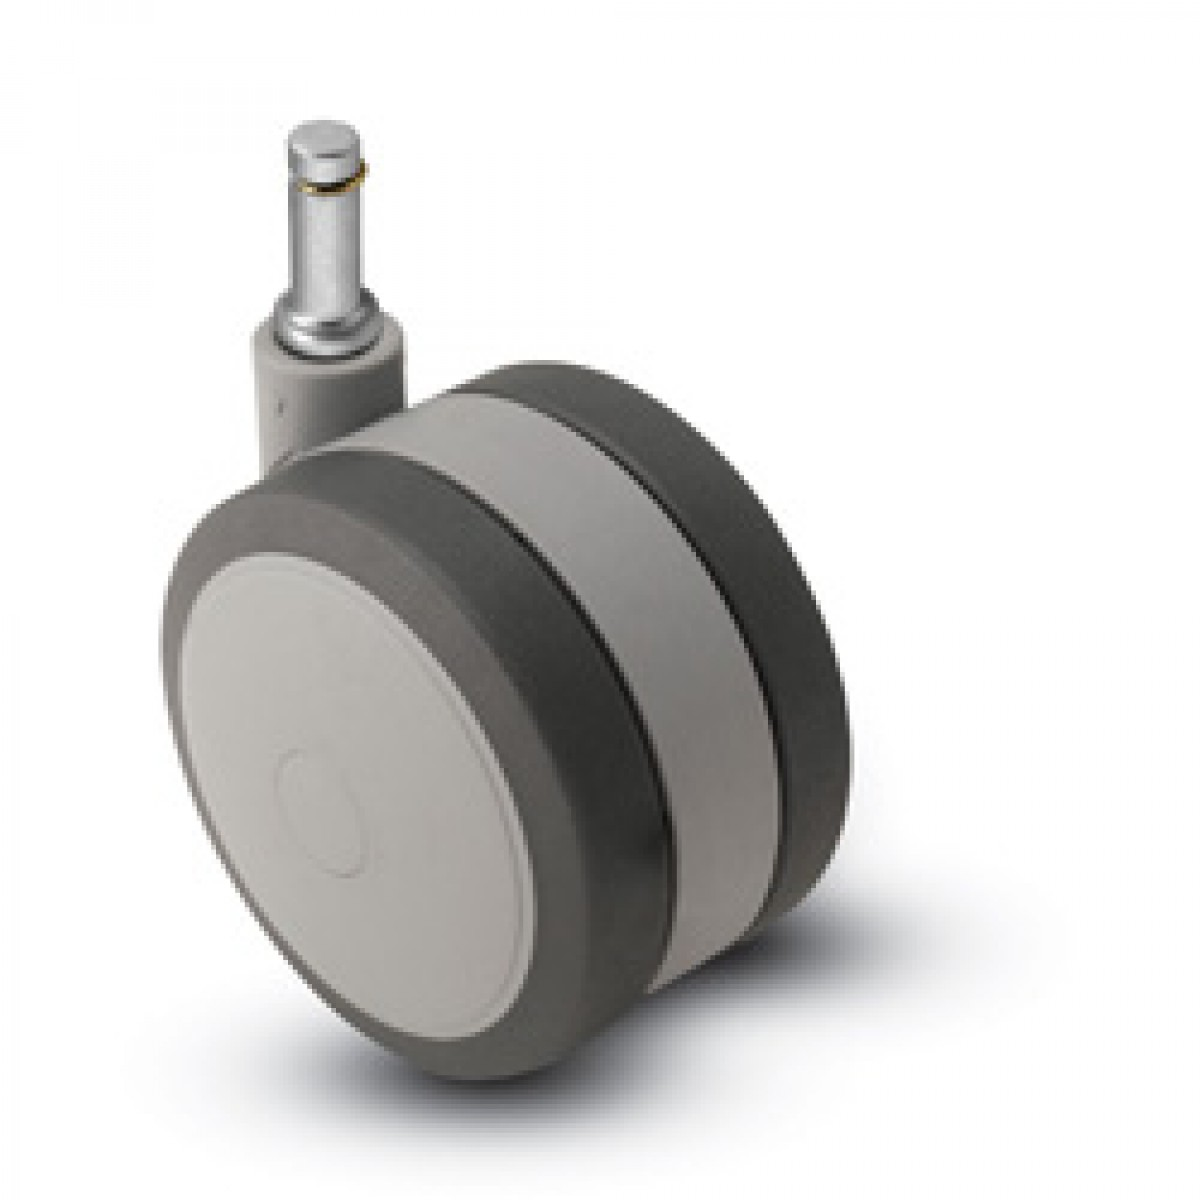 Casters And Wheels Casters For Shower Chairs Casters For Commode Chairs